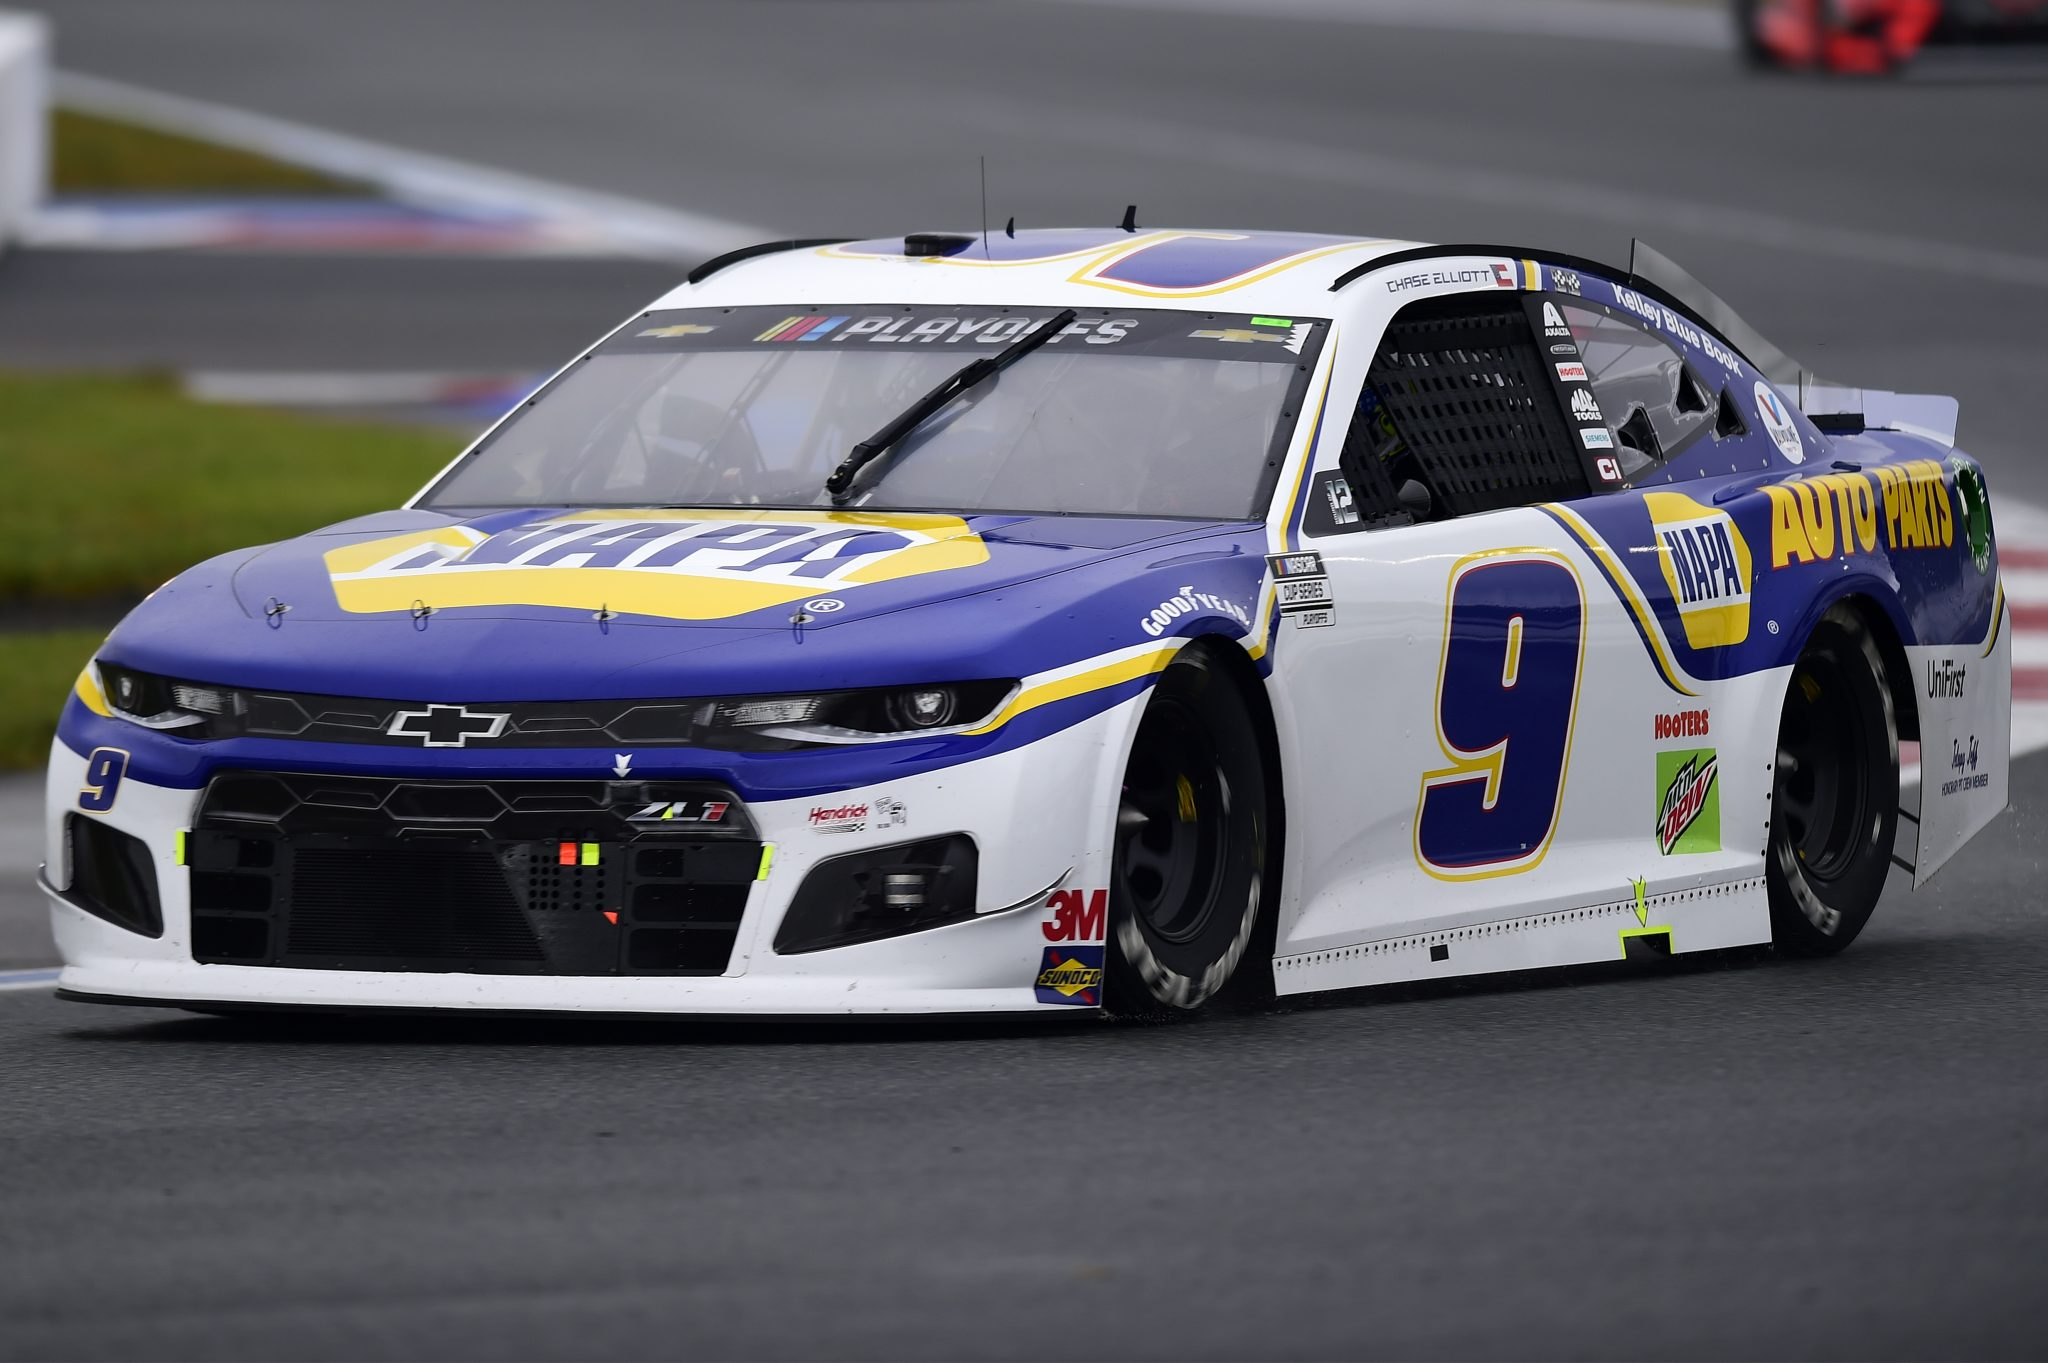 CONCORD, NORTH CAROLINA - OCTOBER 11: Chase Elliott, driver of the #9 NAPA Auto Parts Chevrolet, drives during the NASCAR Cup Series Bank of America ROVAL 400 at Charlotte Motor Speedway on October 11, 2020 in Concord, North Carolina. (Photo by Jared C. Tilton/Getty Images) | Getty Images